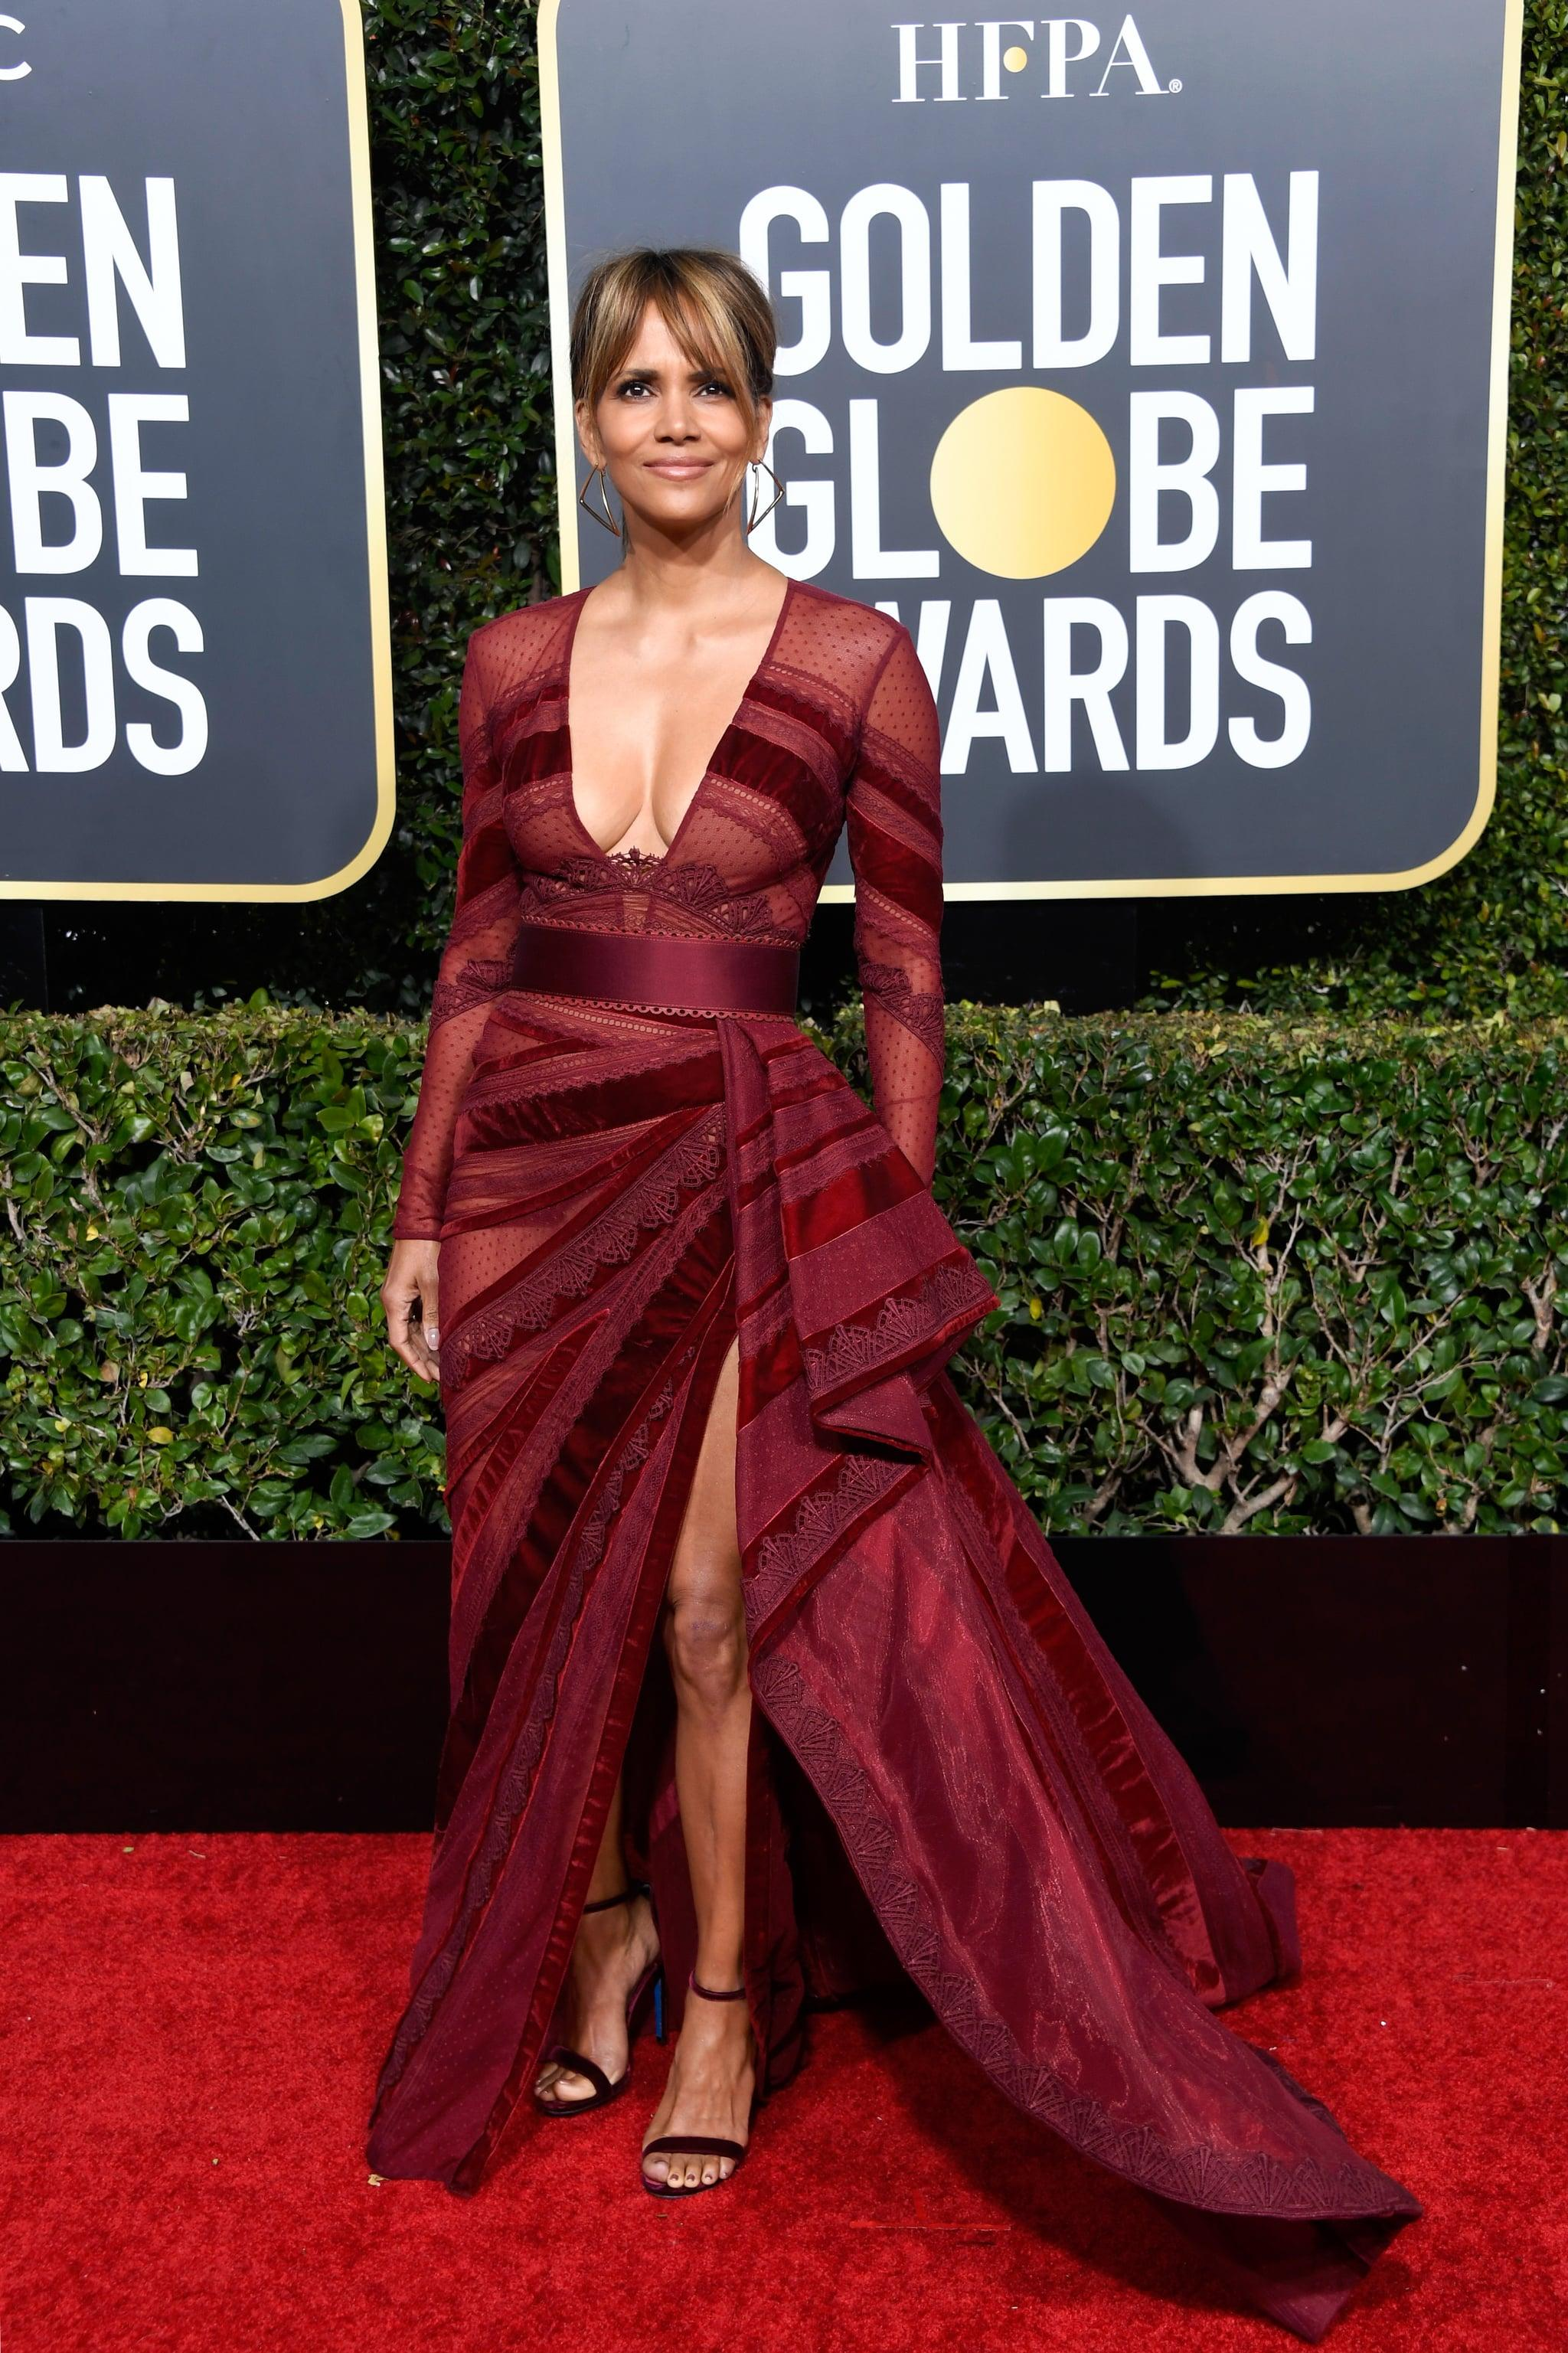 "<p>She looked like a total star in this <a href=""https://www.popsugar.com/fashion/Halle-Berry-Dress-Golden-Globes-2019-45647347"" class=""link rapid-noclick-resp"" rel=""nofollow noopener"" target=""_blank"" data-ylk=""slk:sheer-paneled Zuhair Murad dress"">sheer-paneled Zuhair Murad dress</a> at the Golden Globes in 2019.</p>"